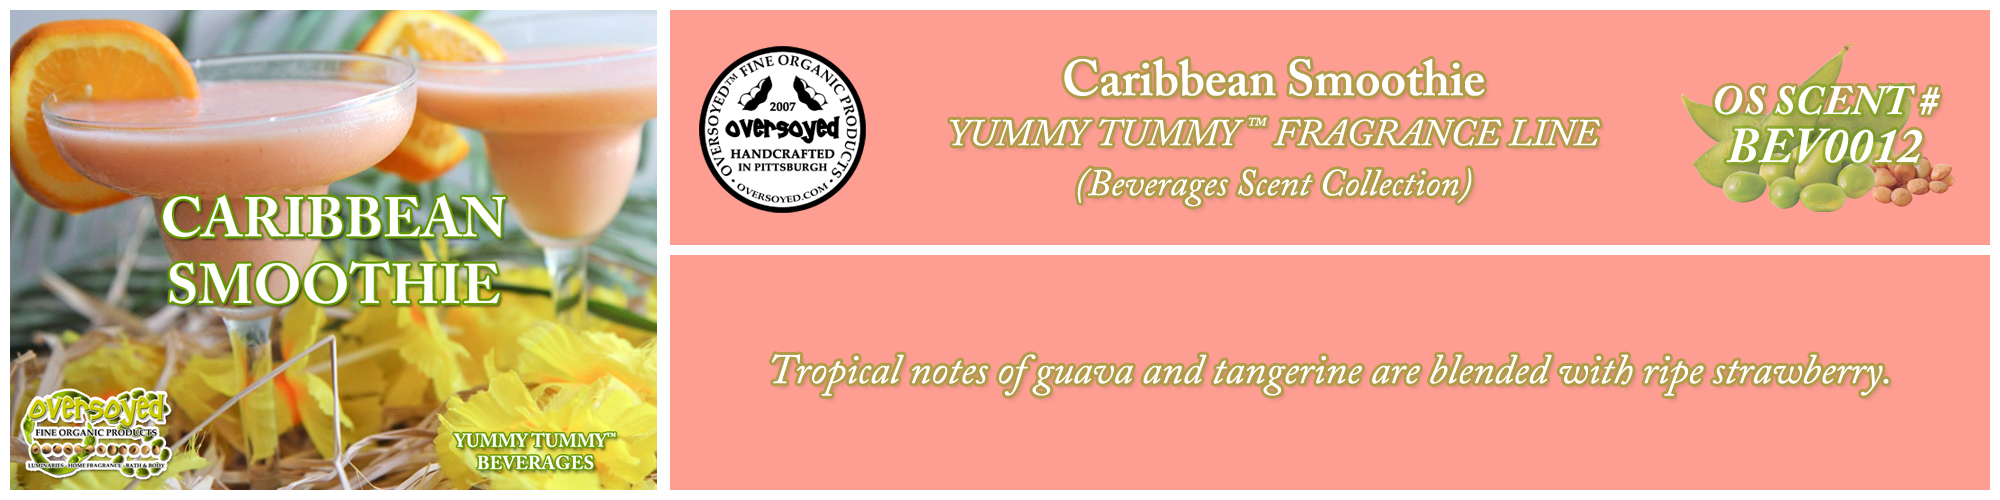 Caribbean Smoothie Handcrafted Products Collection